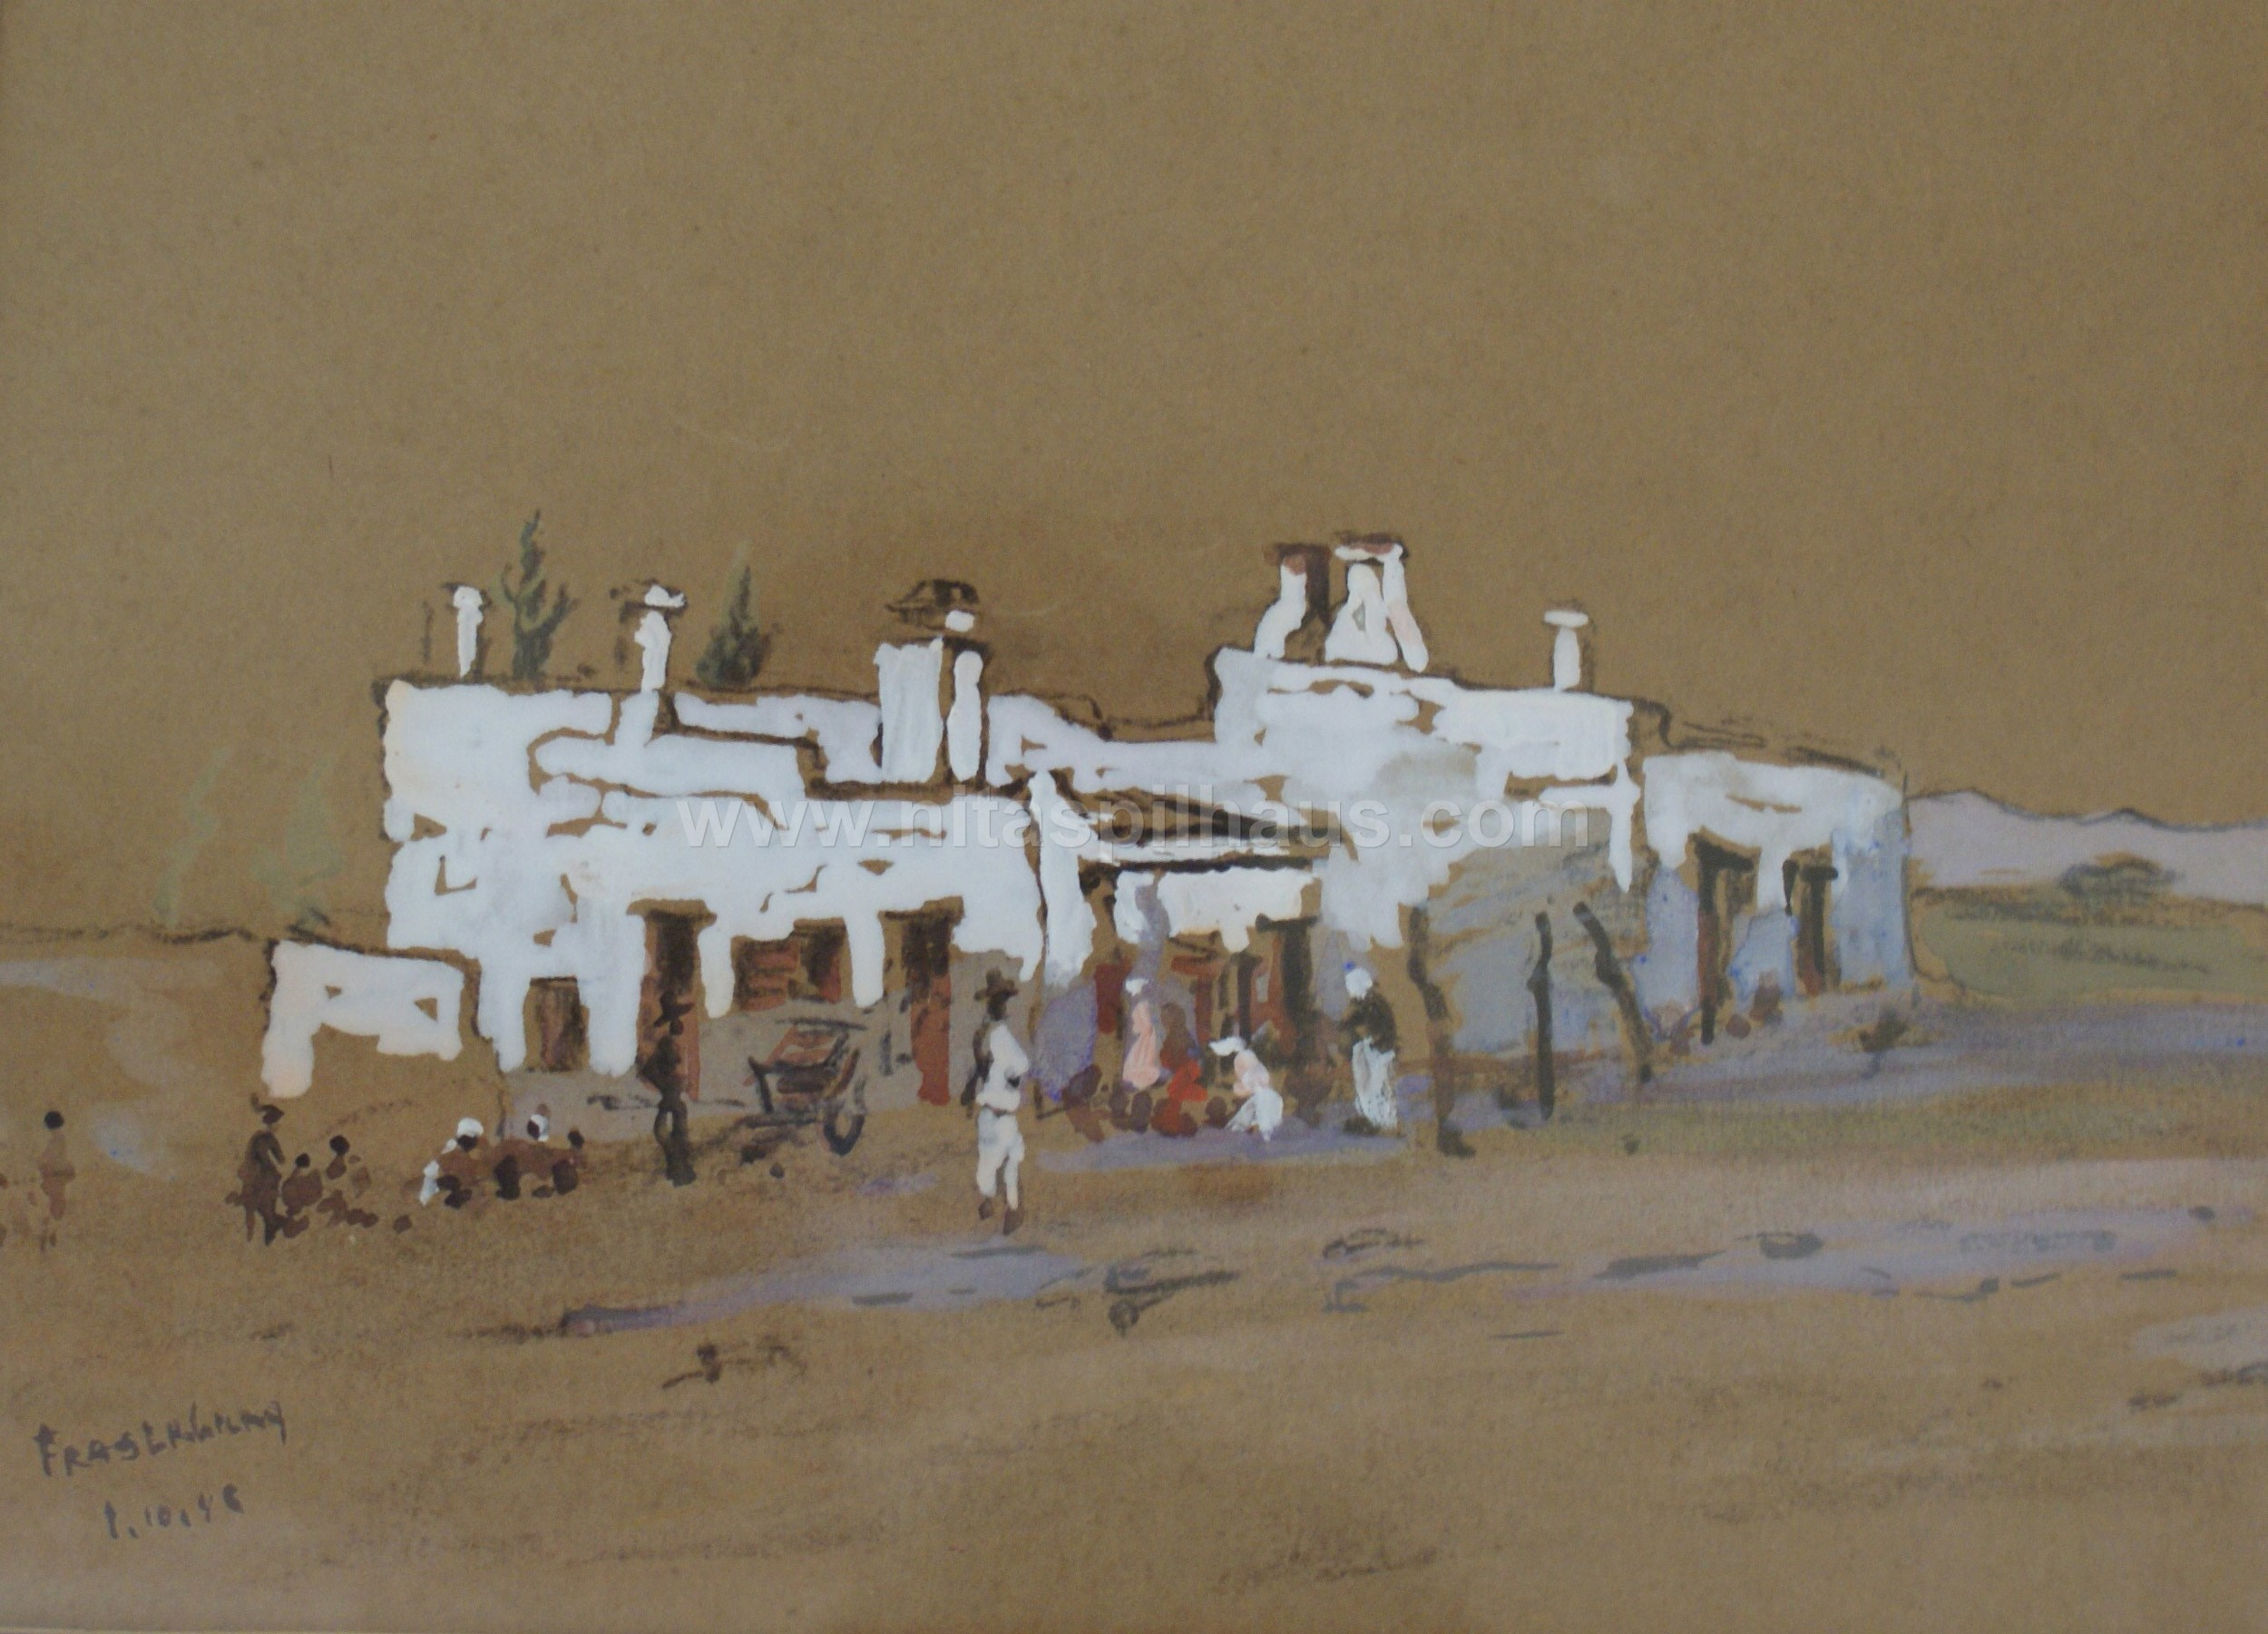 Fraserburg watercolour on paper dated 1.10.40 54 x 44 Collector 8